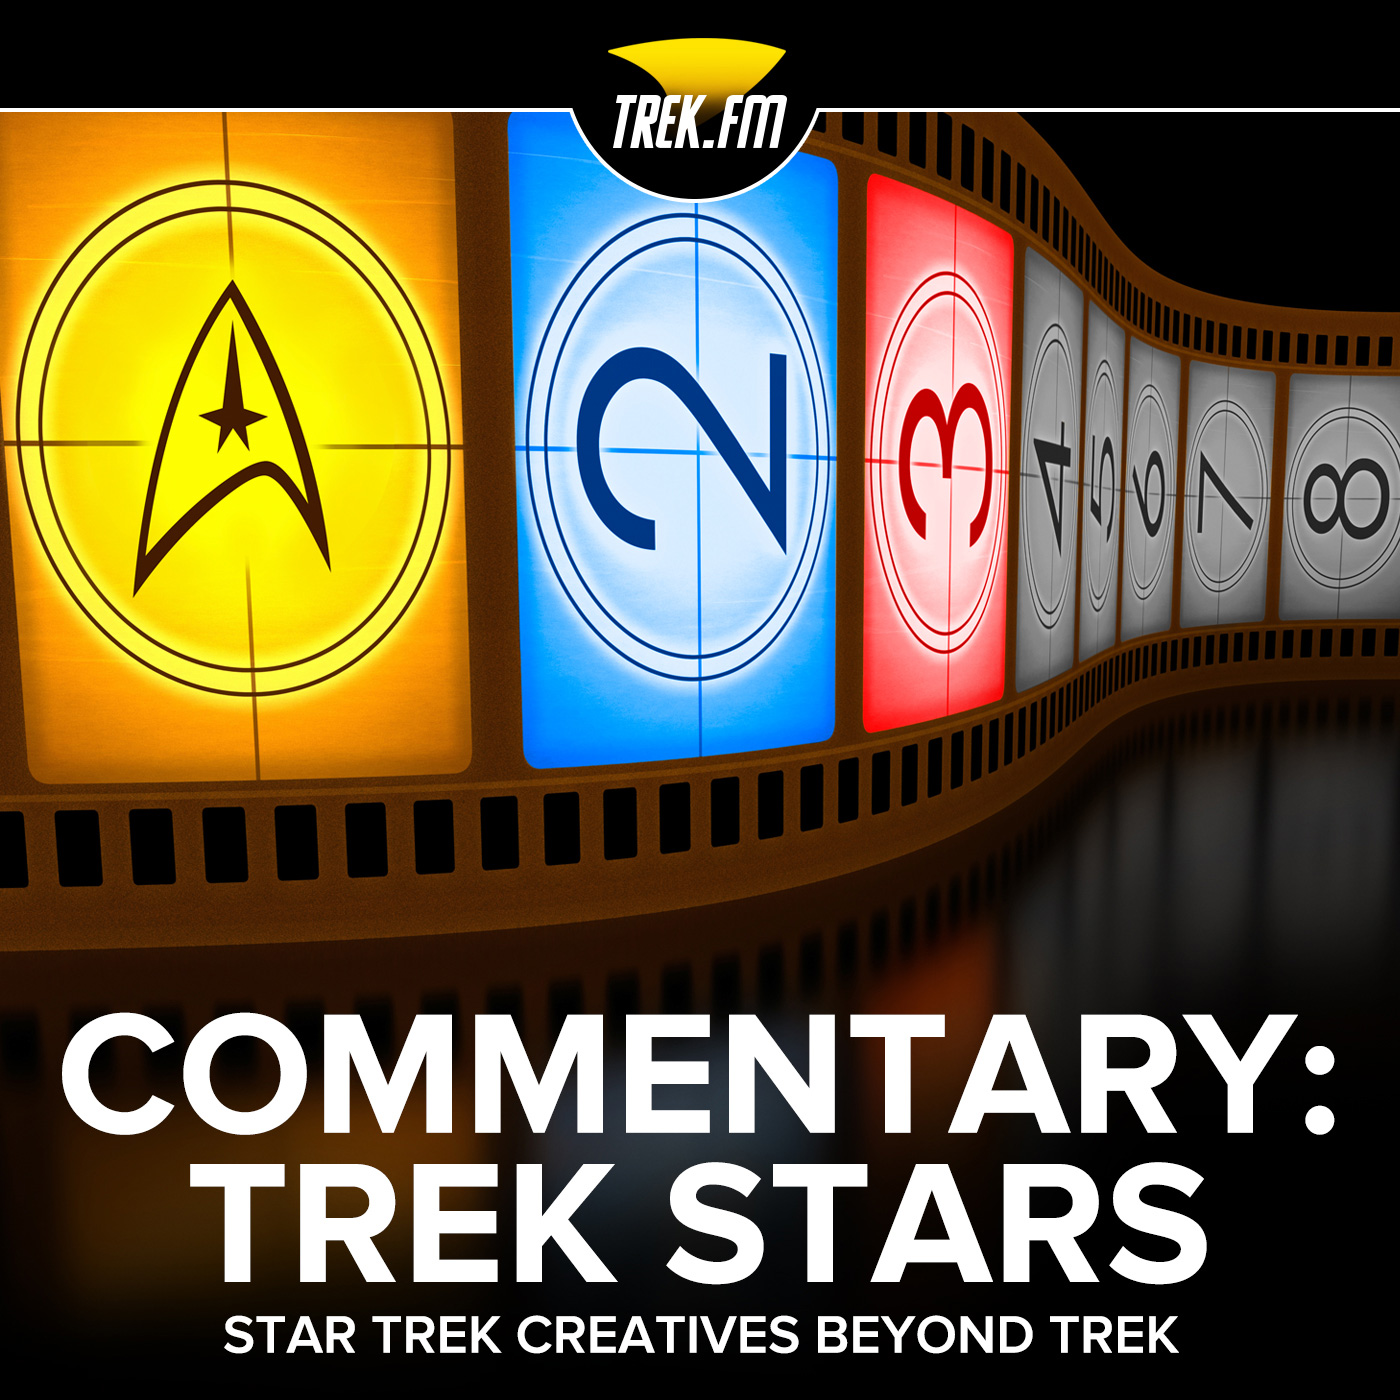 Star Trek Podcast | Commentary: Trek Stars - Creative Work Beyond Star Trek | Trek.fm